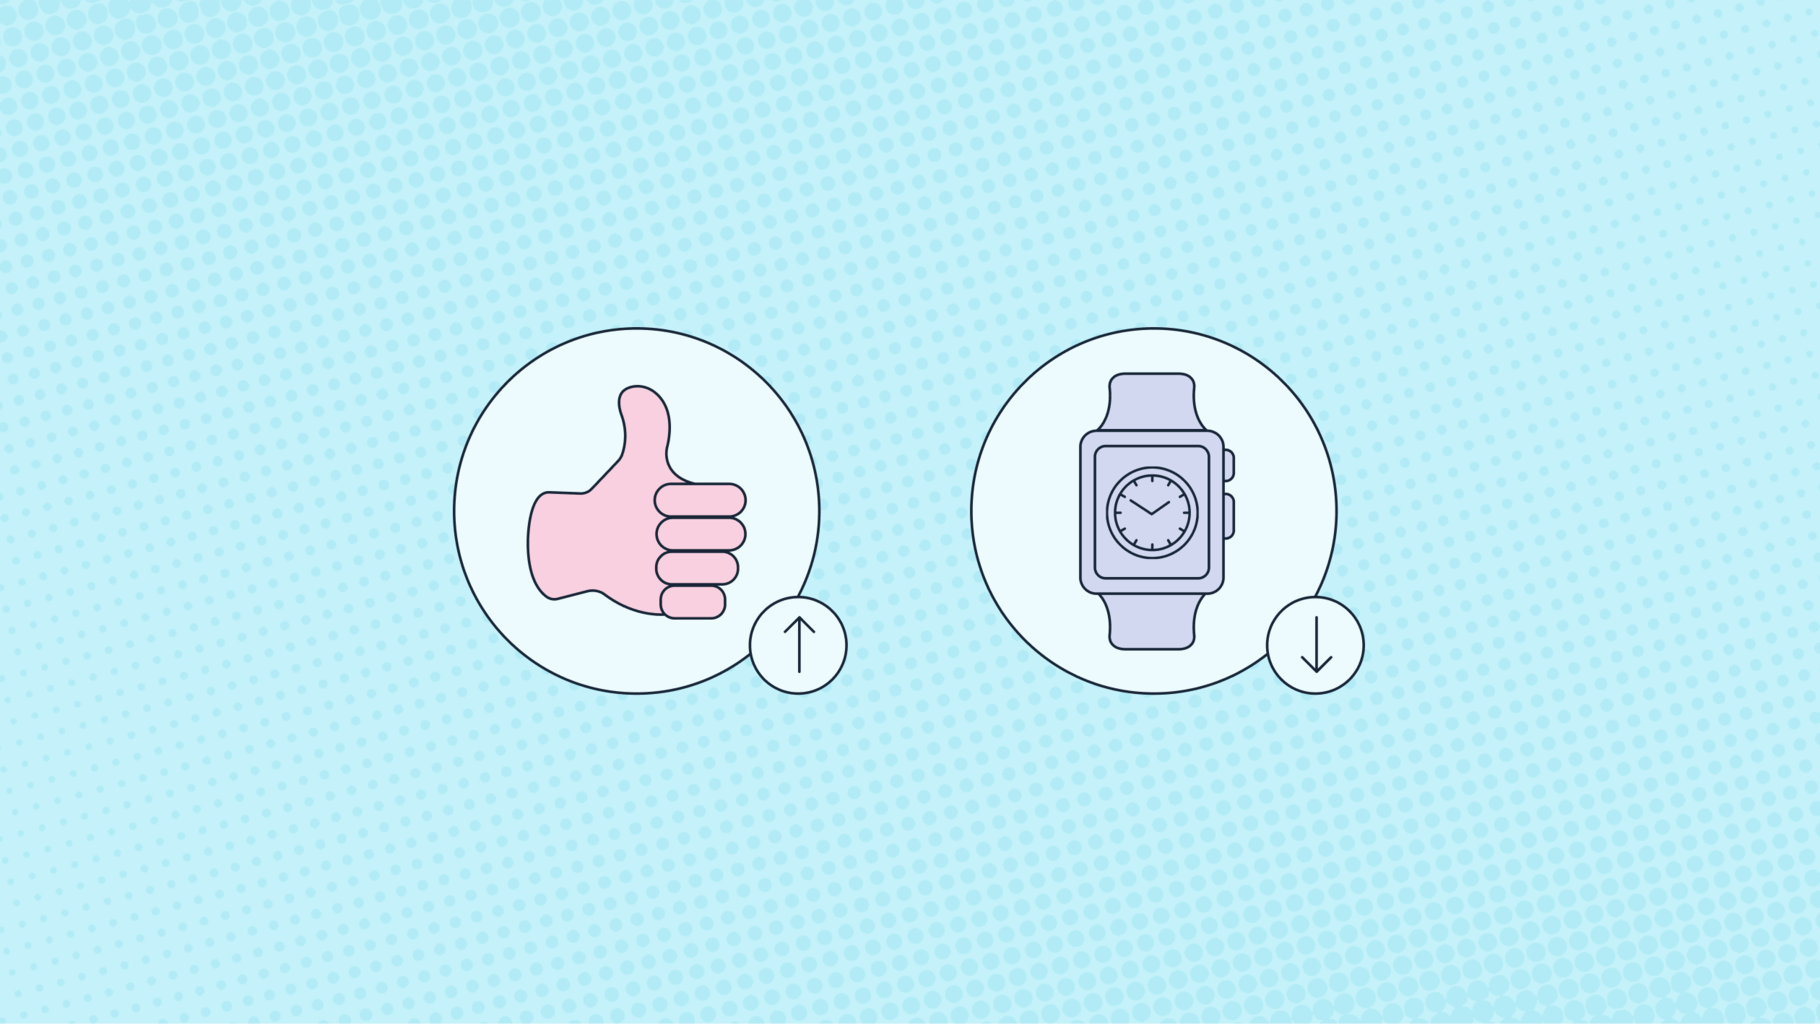 Illustration showing two icons, a thumbs up icon with an upward arrow and a wrist watch with a downward arrow